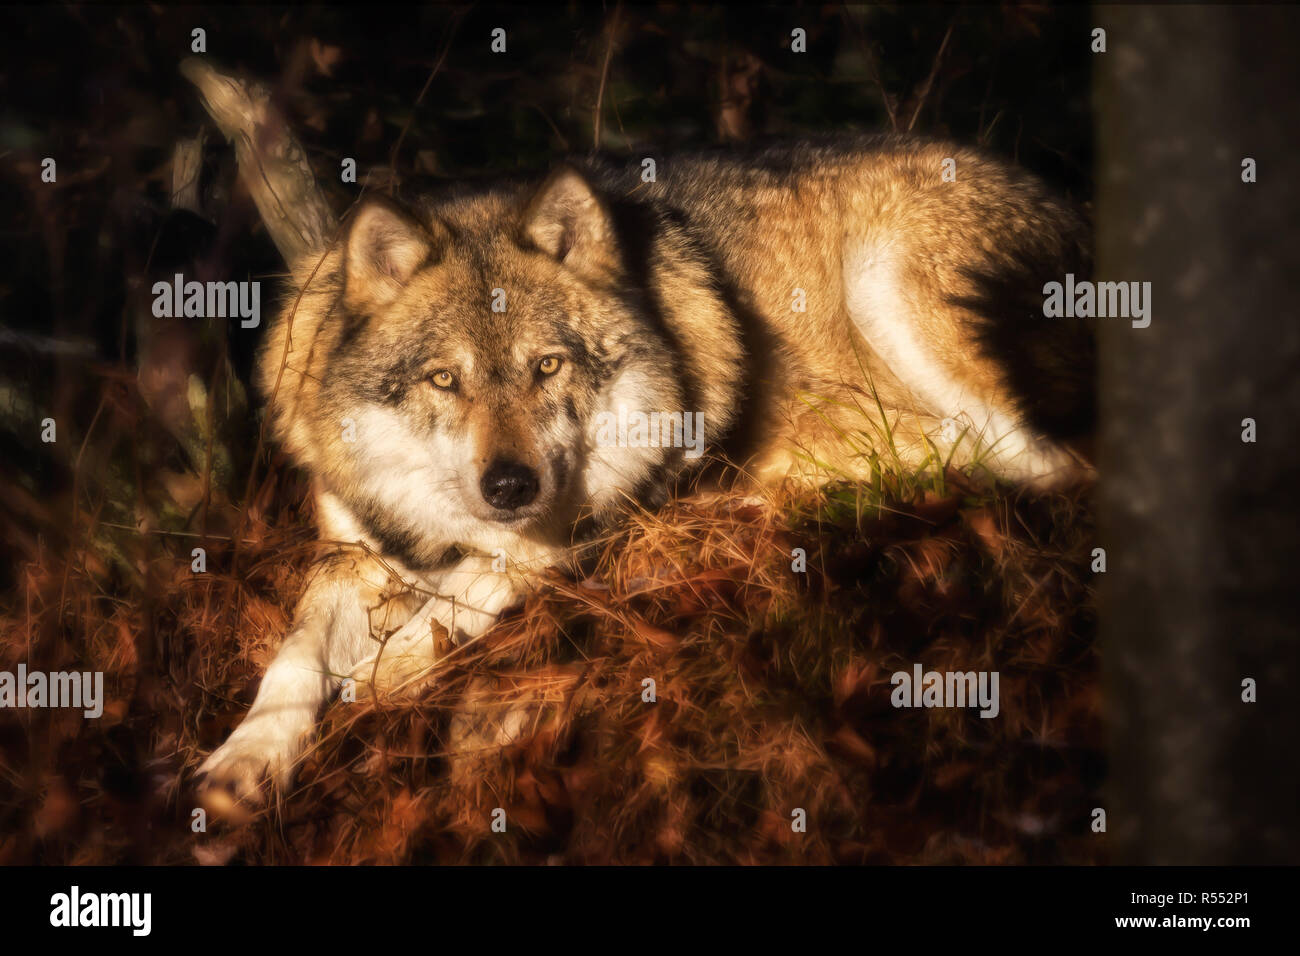 Lying wolf on foliage looking at the camera - Stock Image